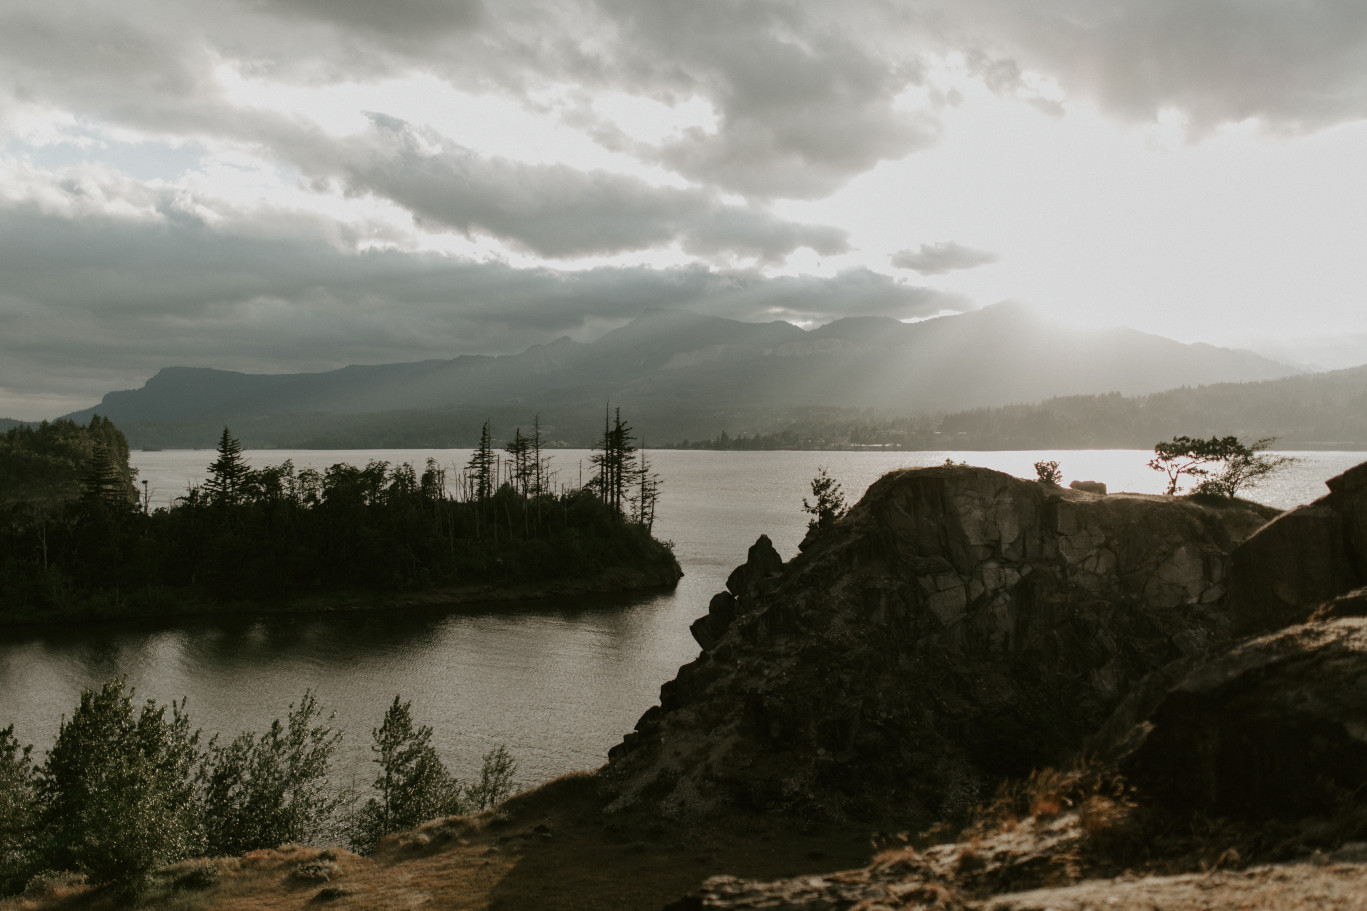 A view of the Columbia River at Cascade Locks at the Columbia Gorge, Oregon. Elopement photography in Portland Oregon by Sienna Plus Josh.